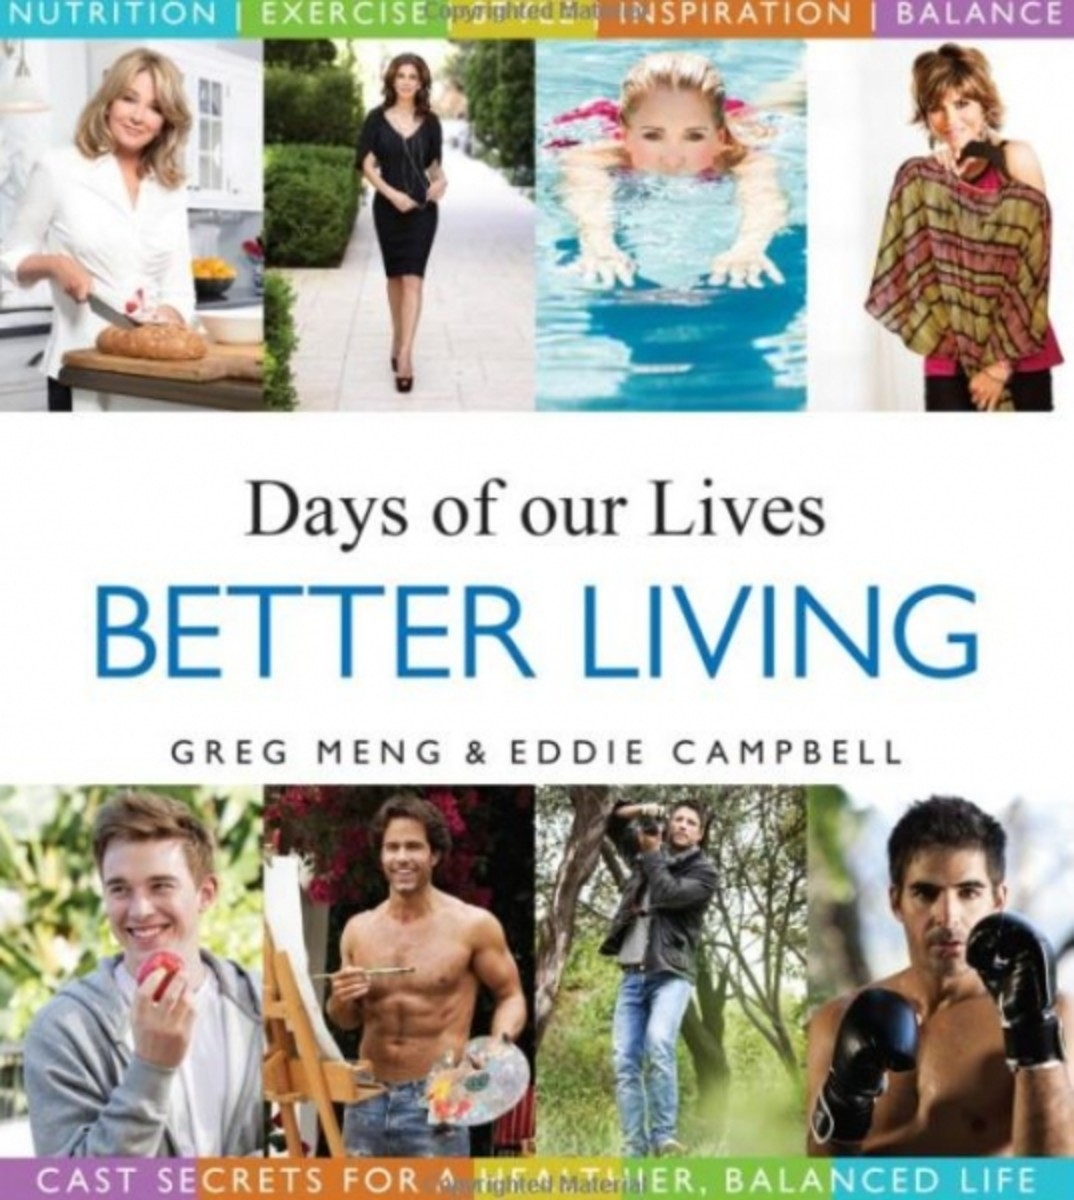 Days Of Our Lives Cast Goes On Tour To Promote New Lifestyle Book